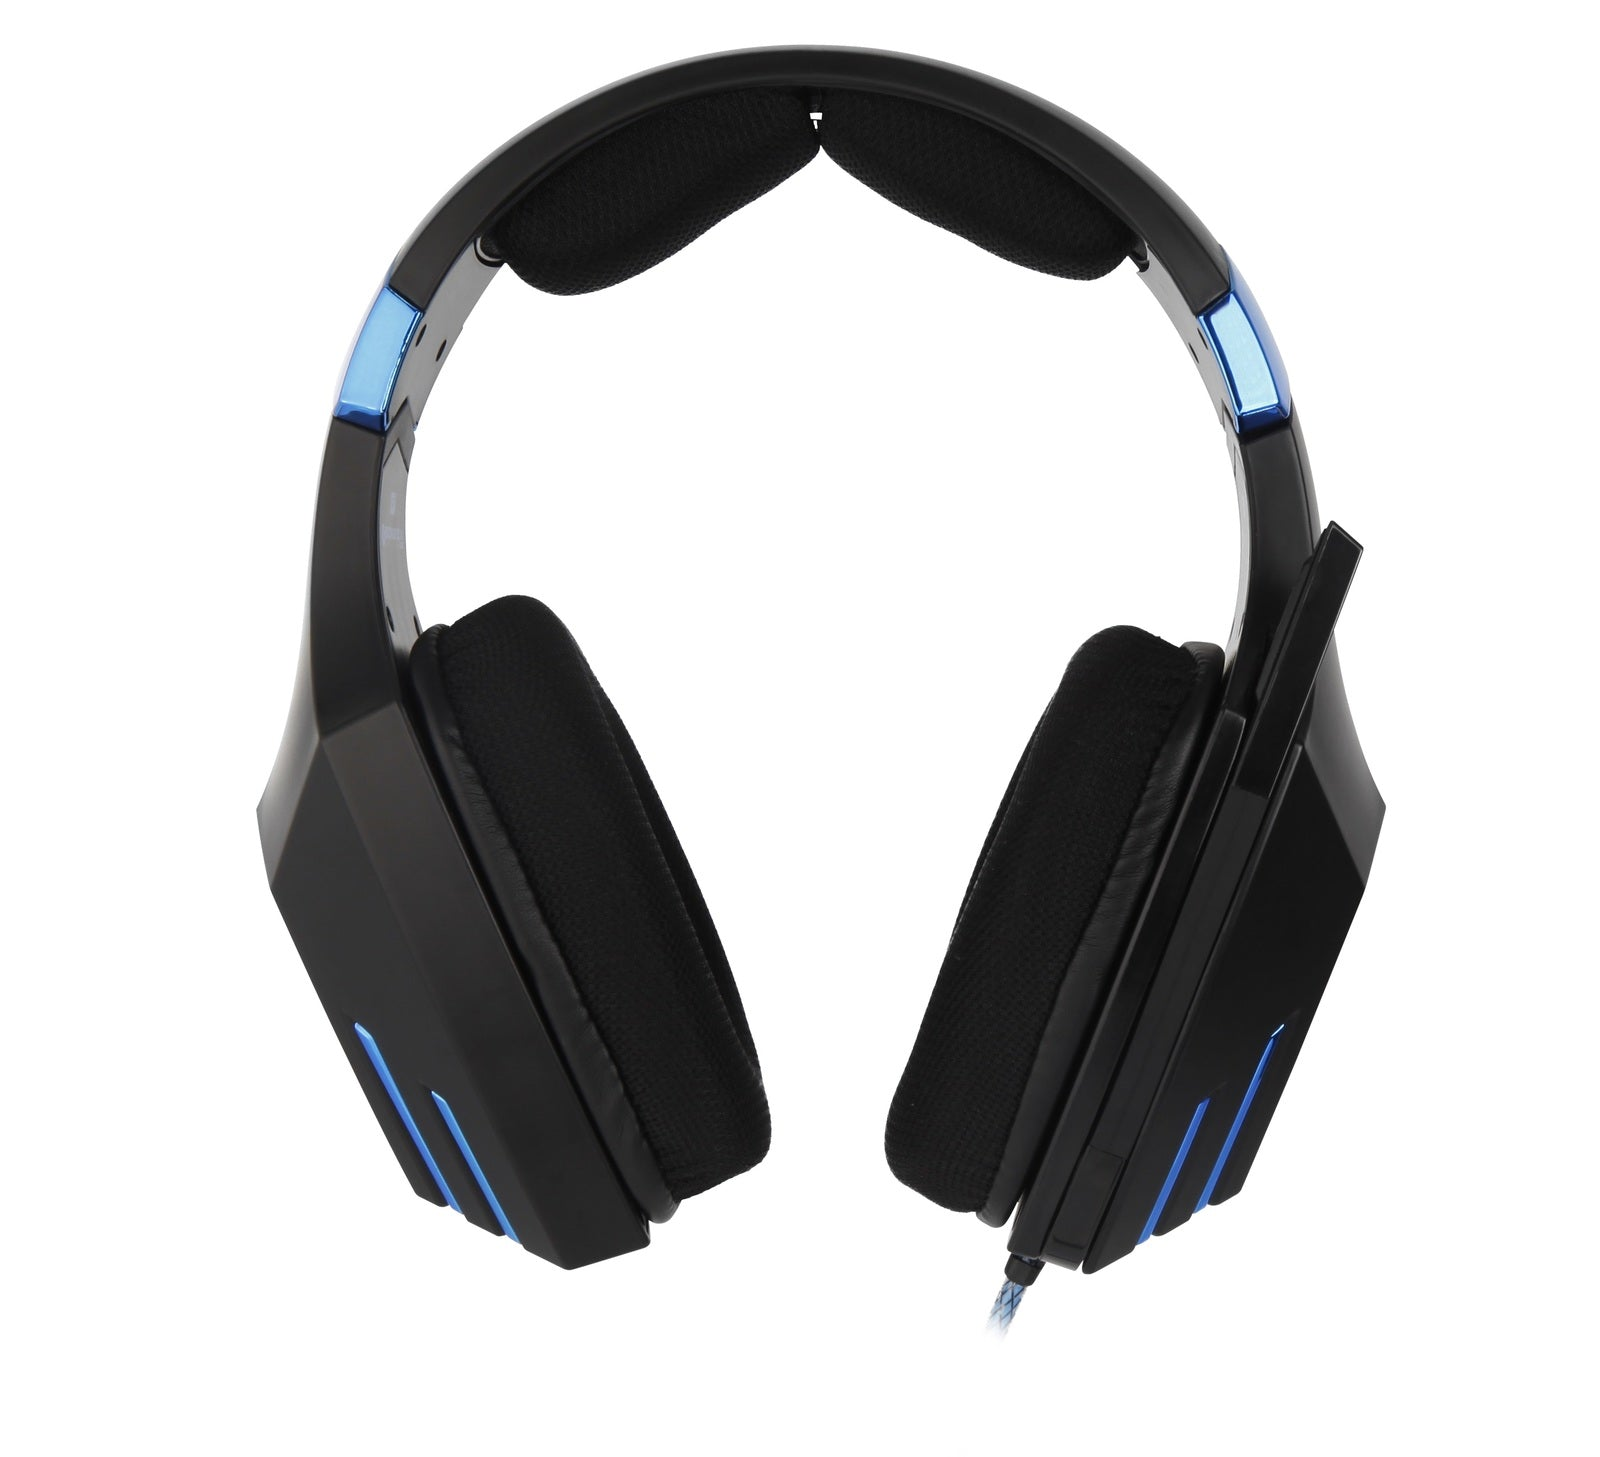 SADES Spellond Pro Gaming Headset - PC Games